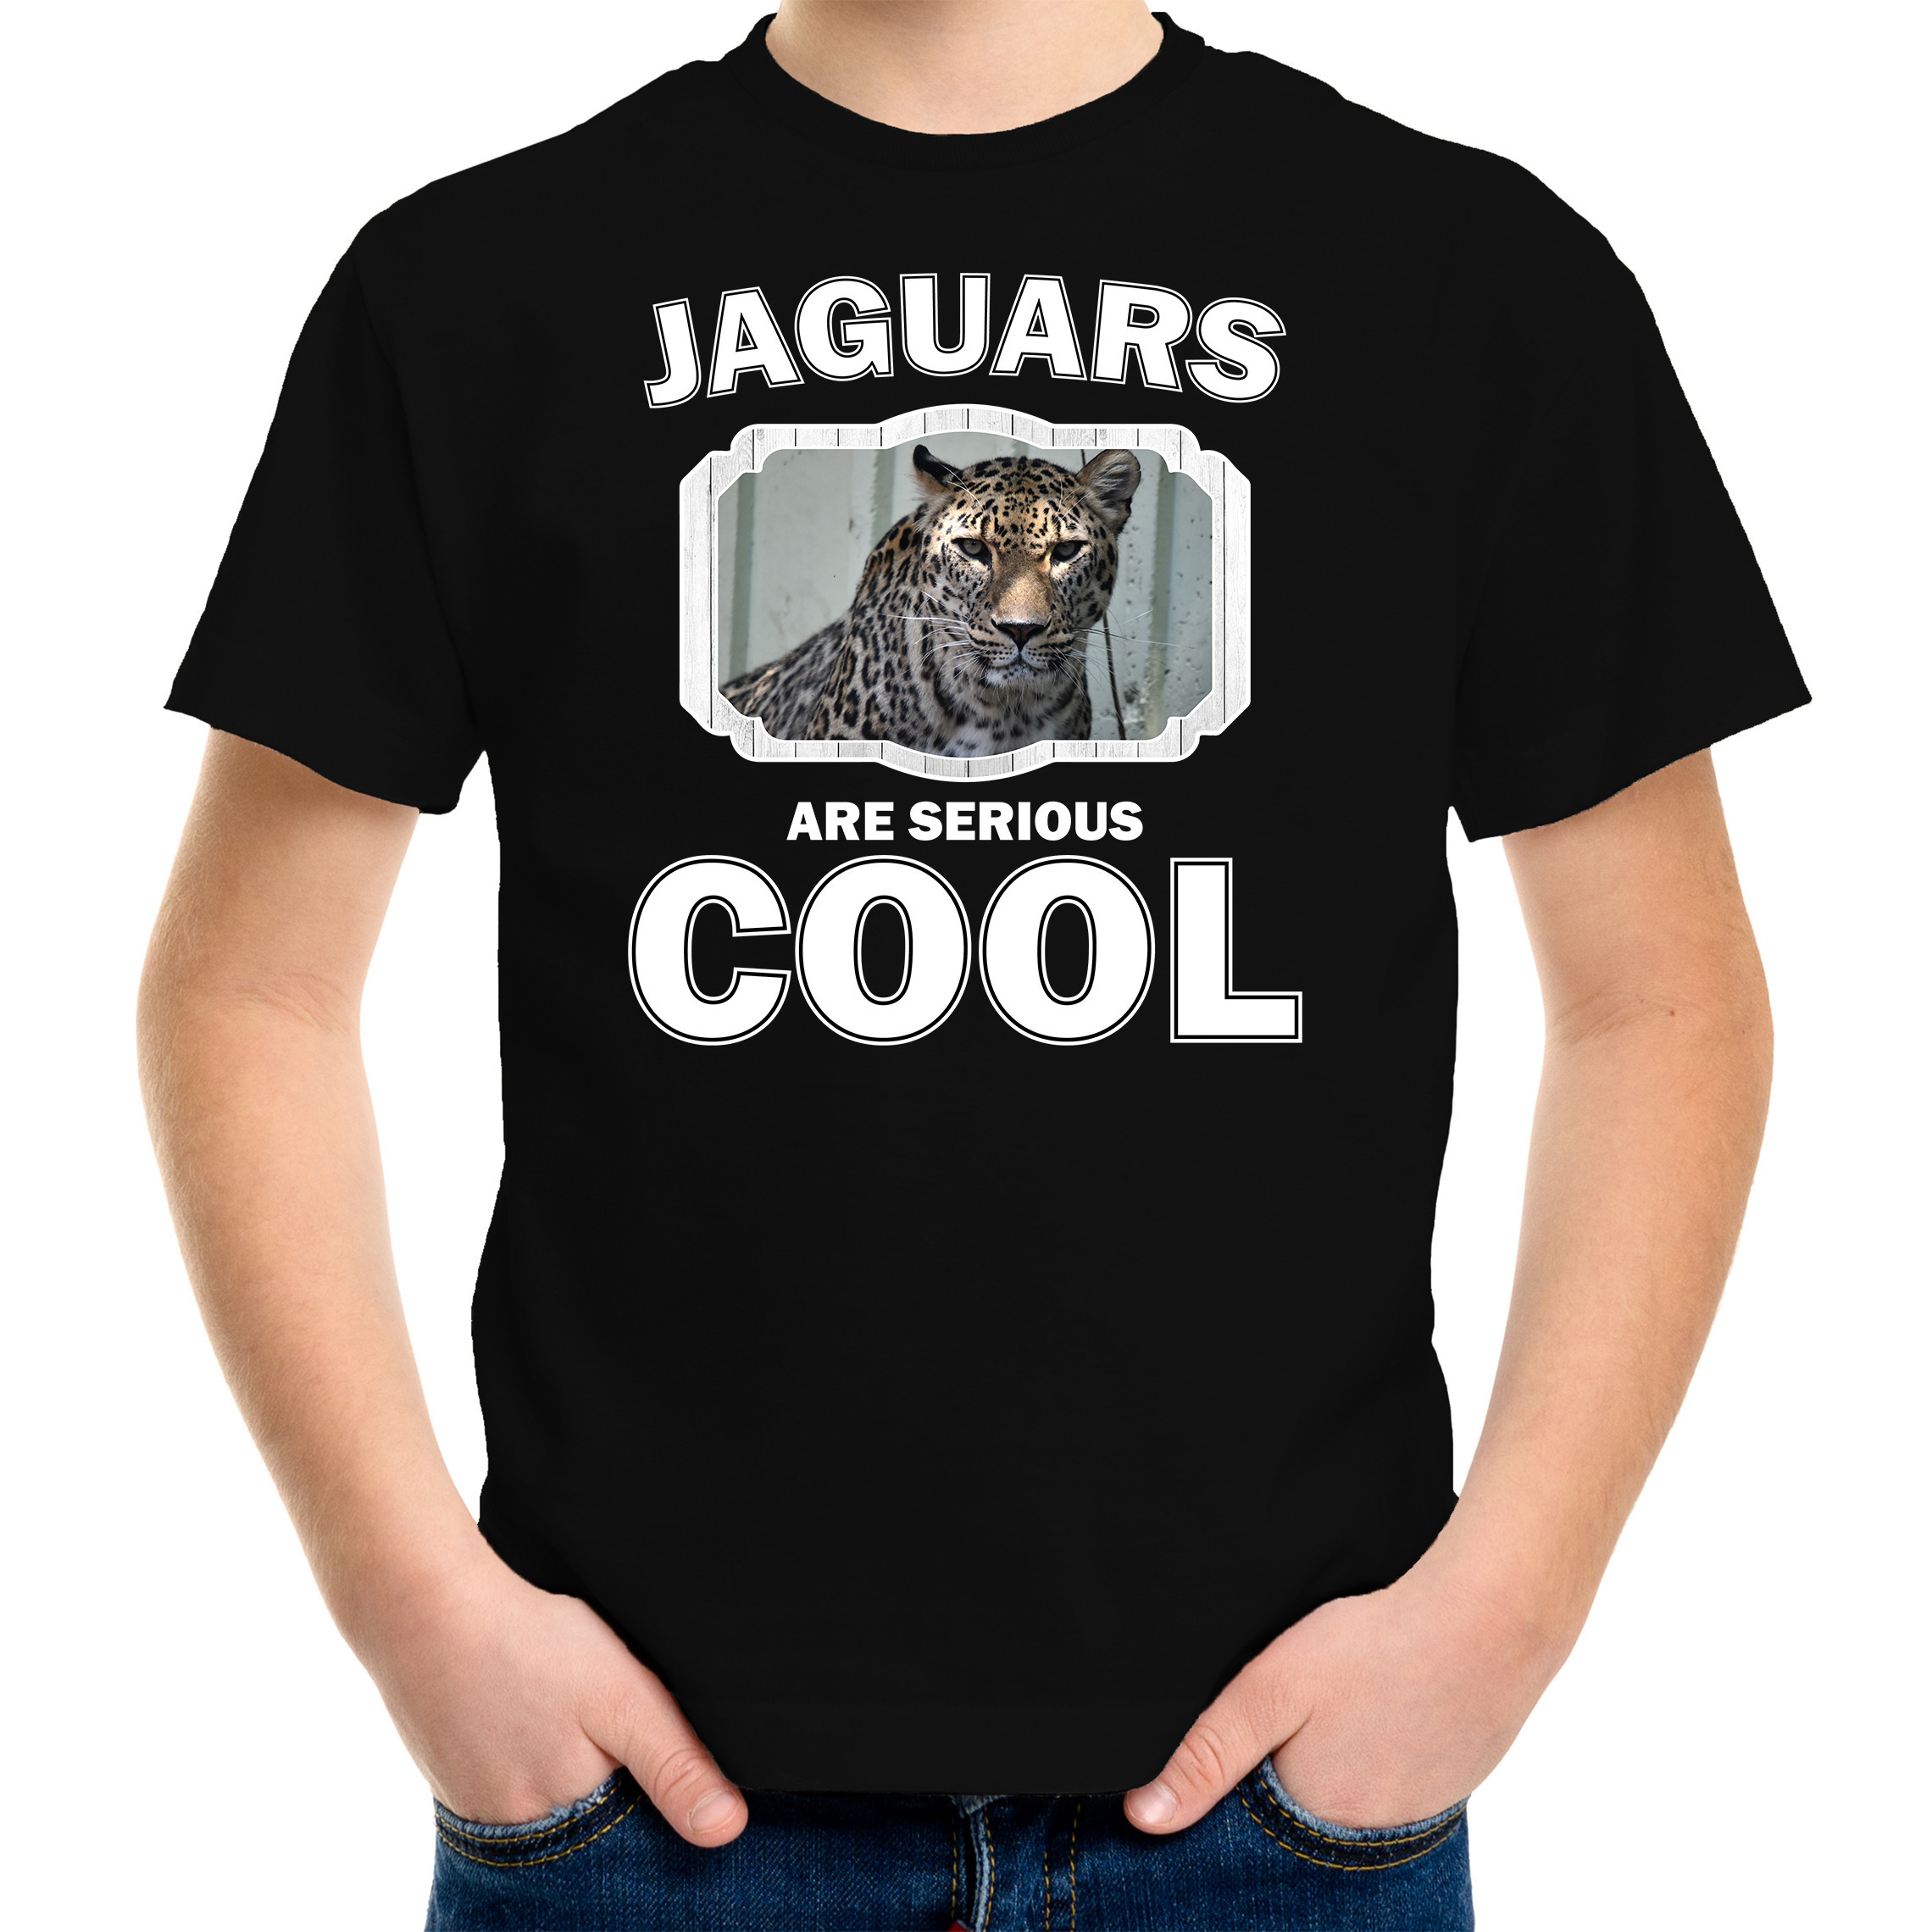 T-shirt jaguars are serious cool zwart kinderen - jaguars/ gevlekte jaguar shirt